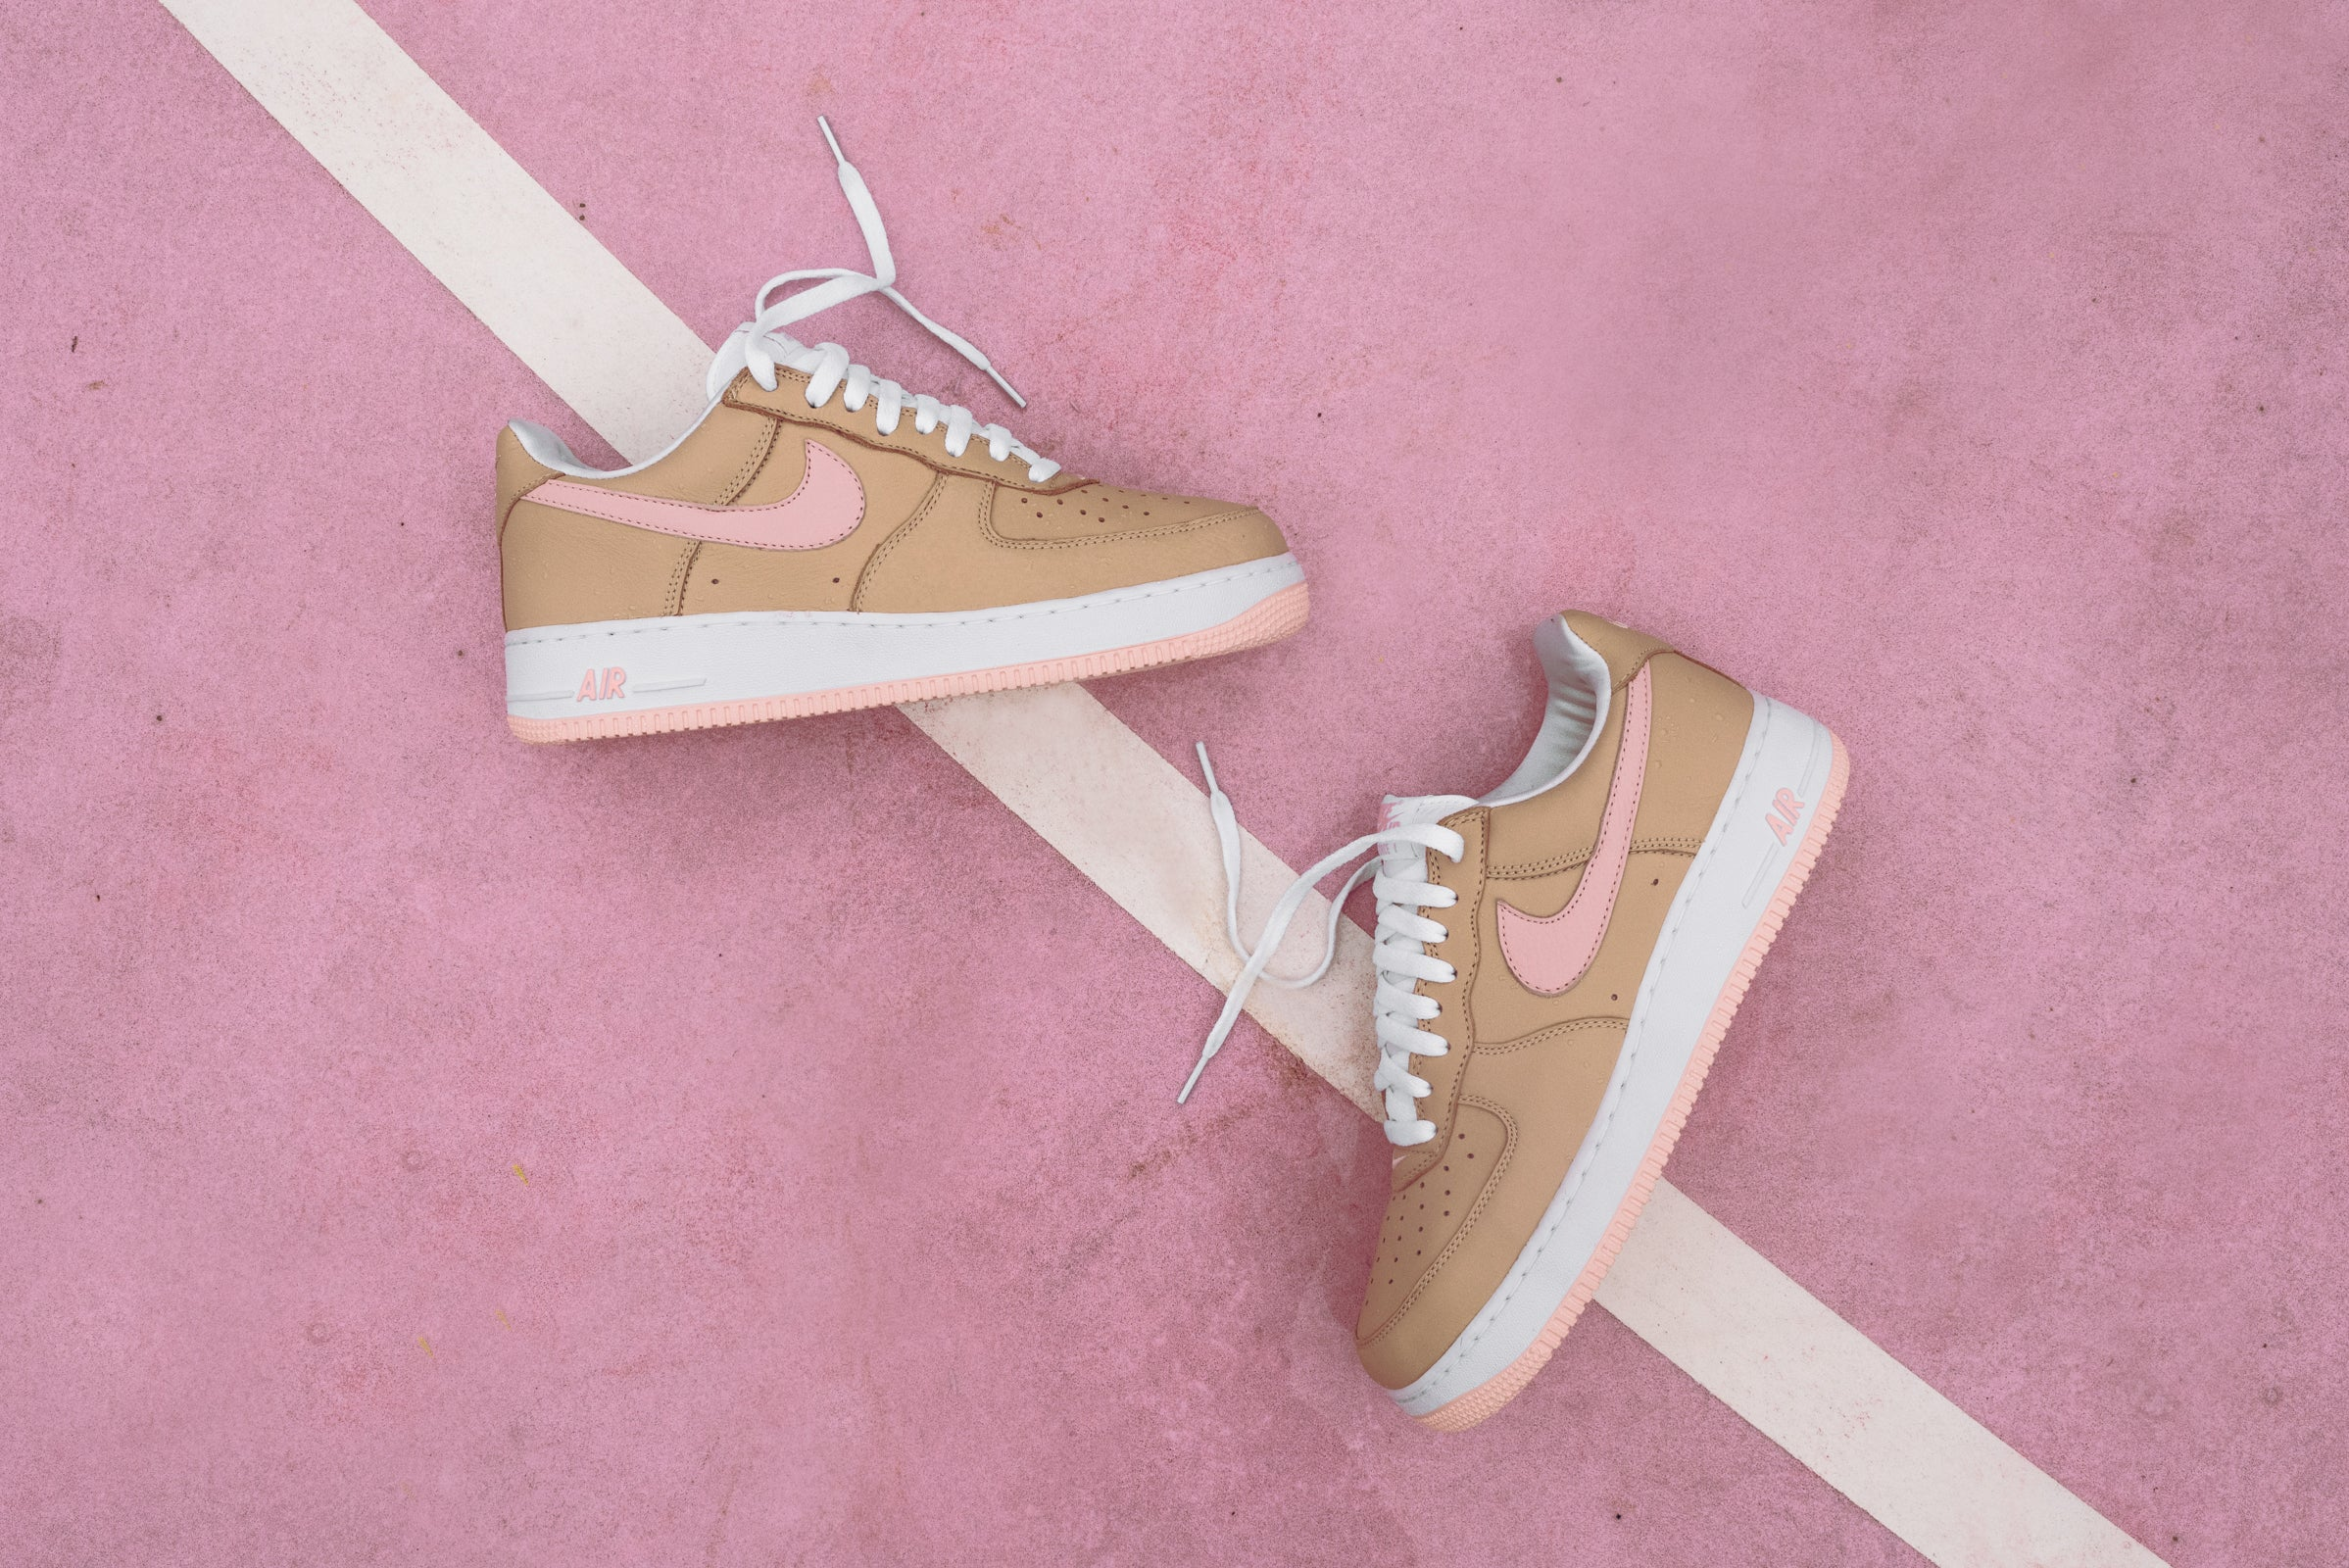 AF1 Linen as a Kith Miami Exclusive